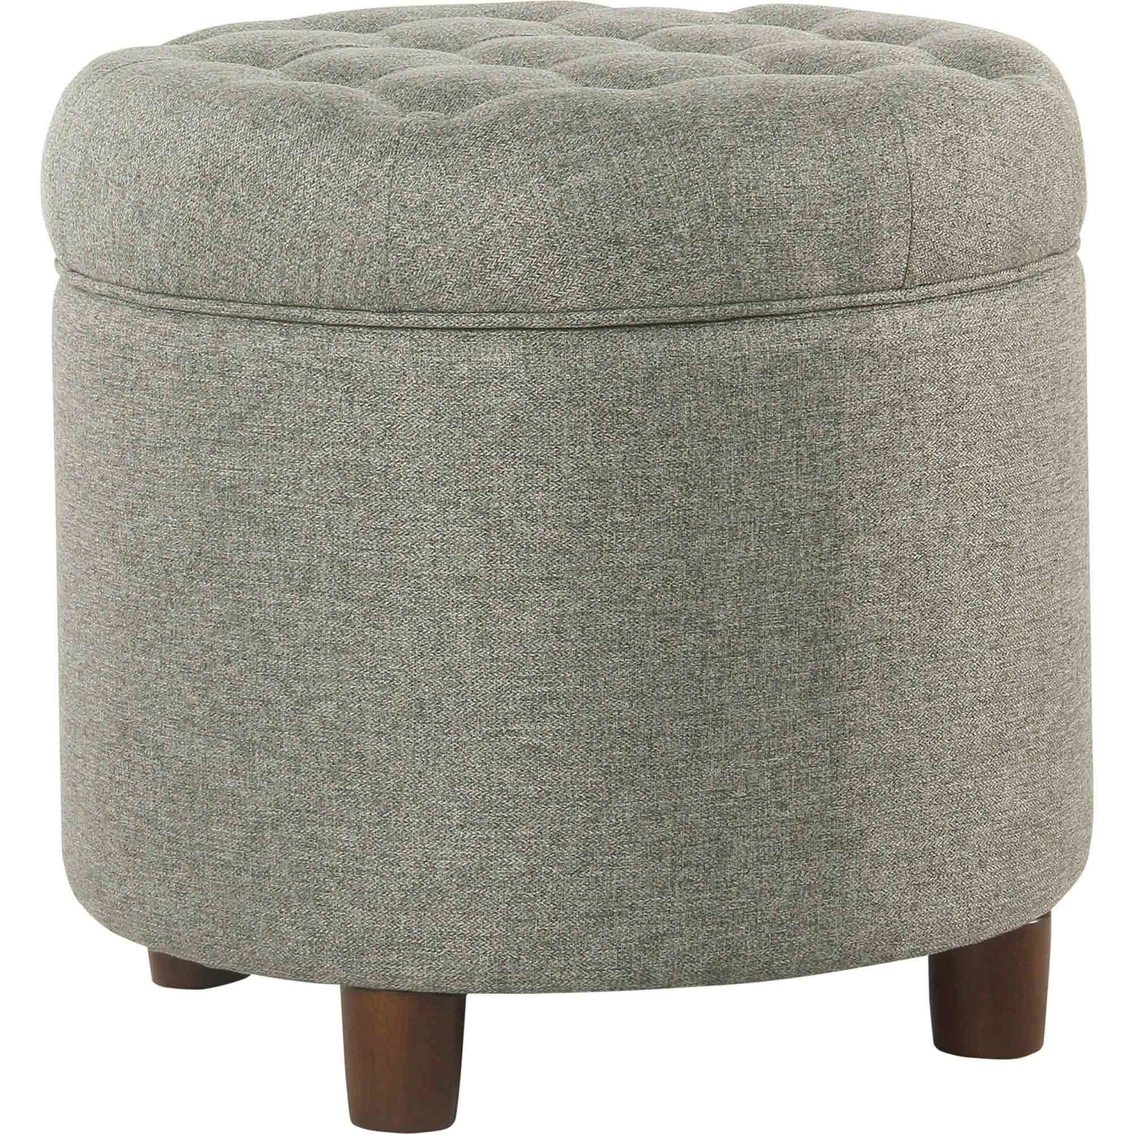 kinfine usa small round storage ottoman ottomans home appliances shop the exchange. Black Bedroom Furniture Sets. Home Design Ideas